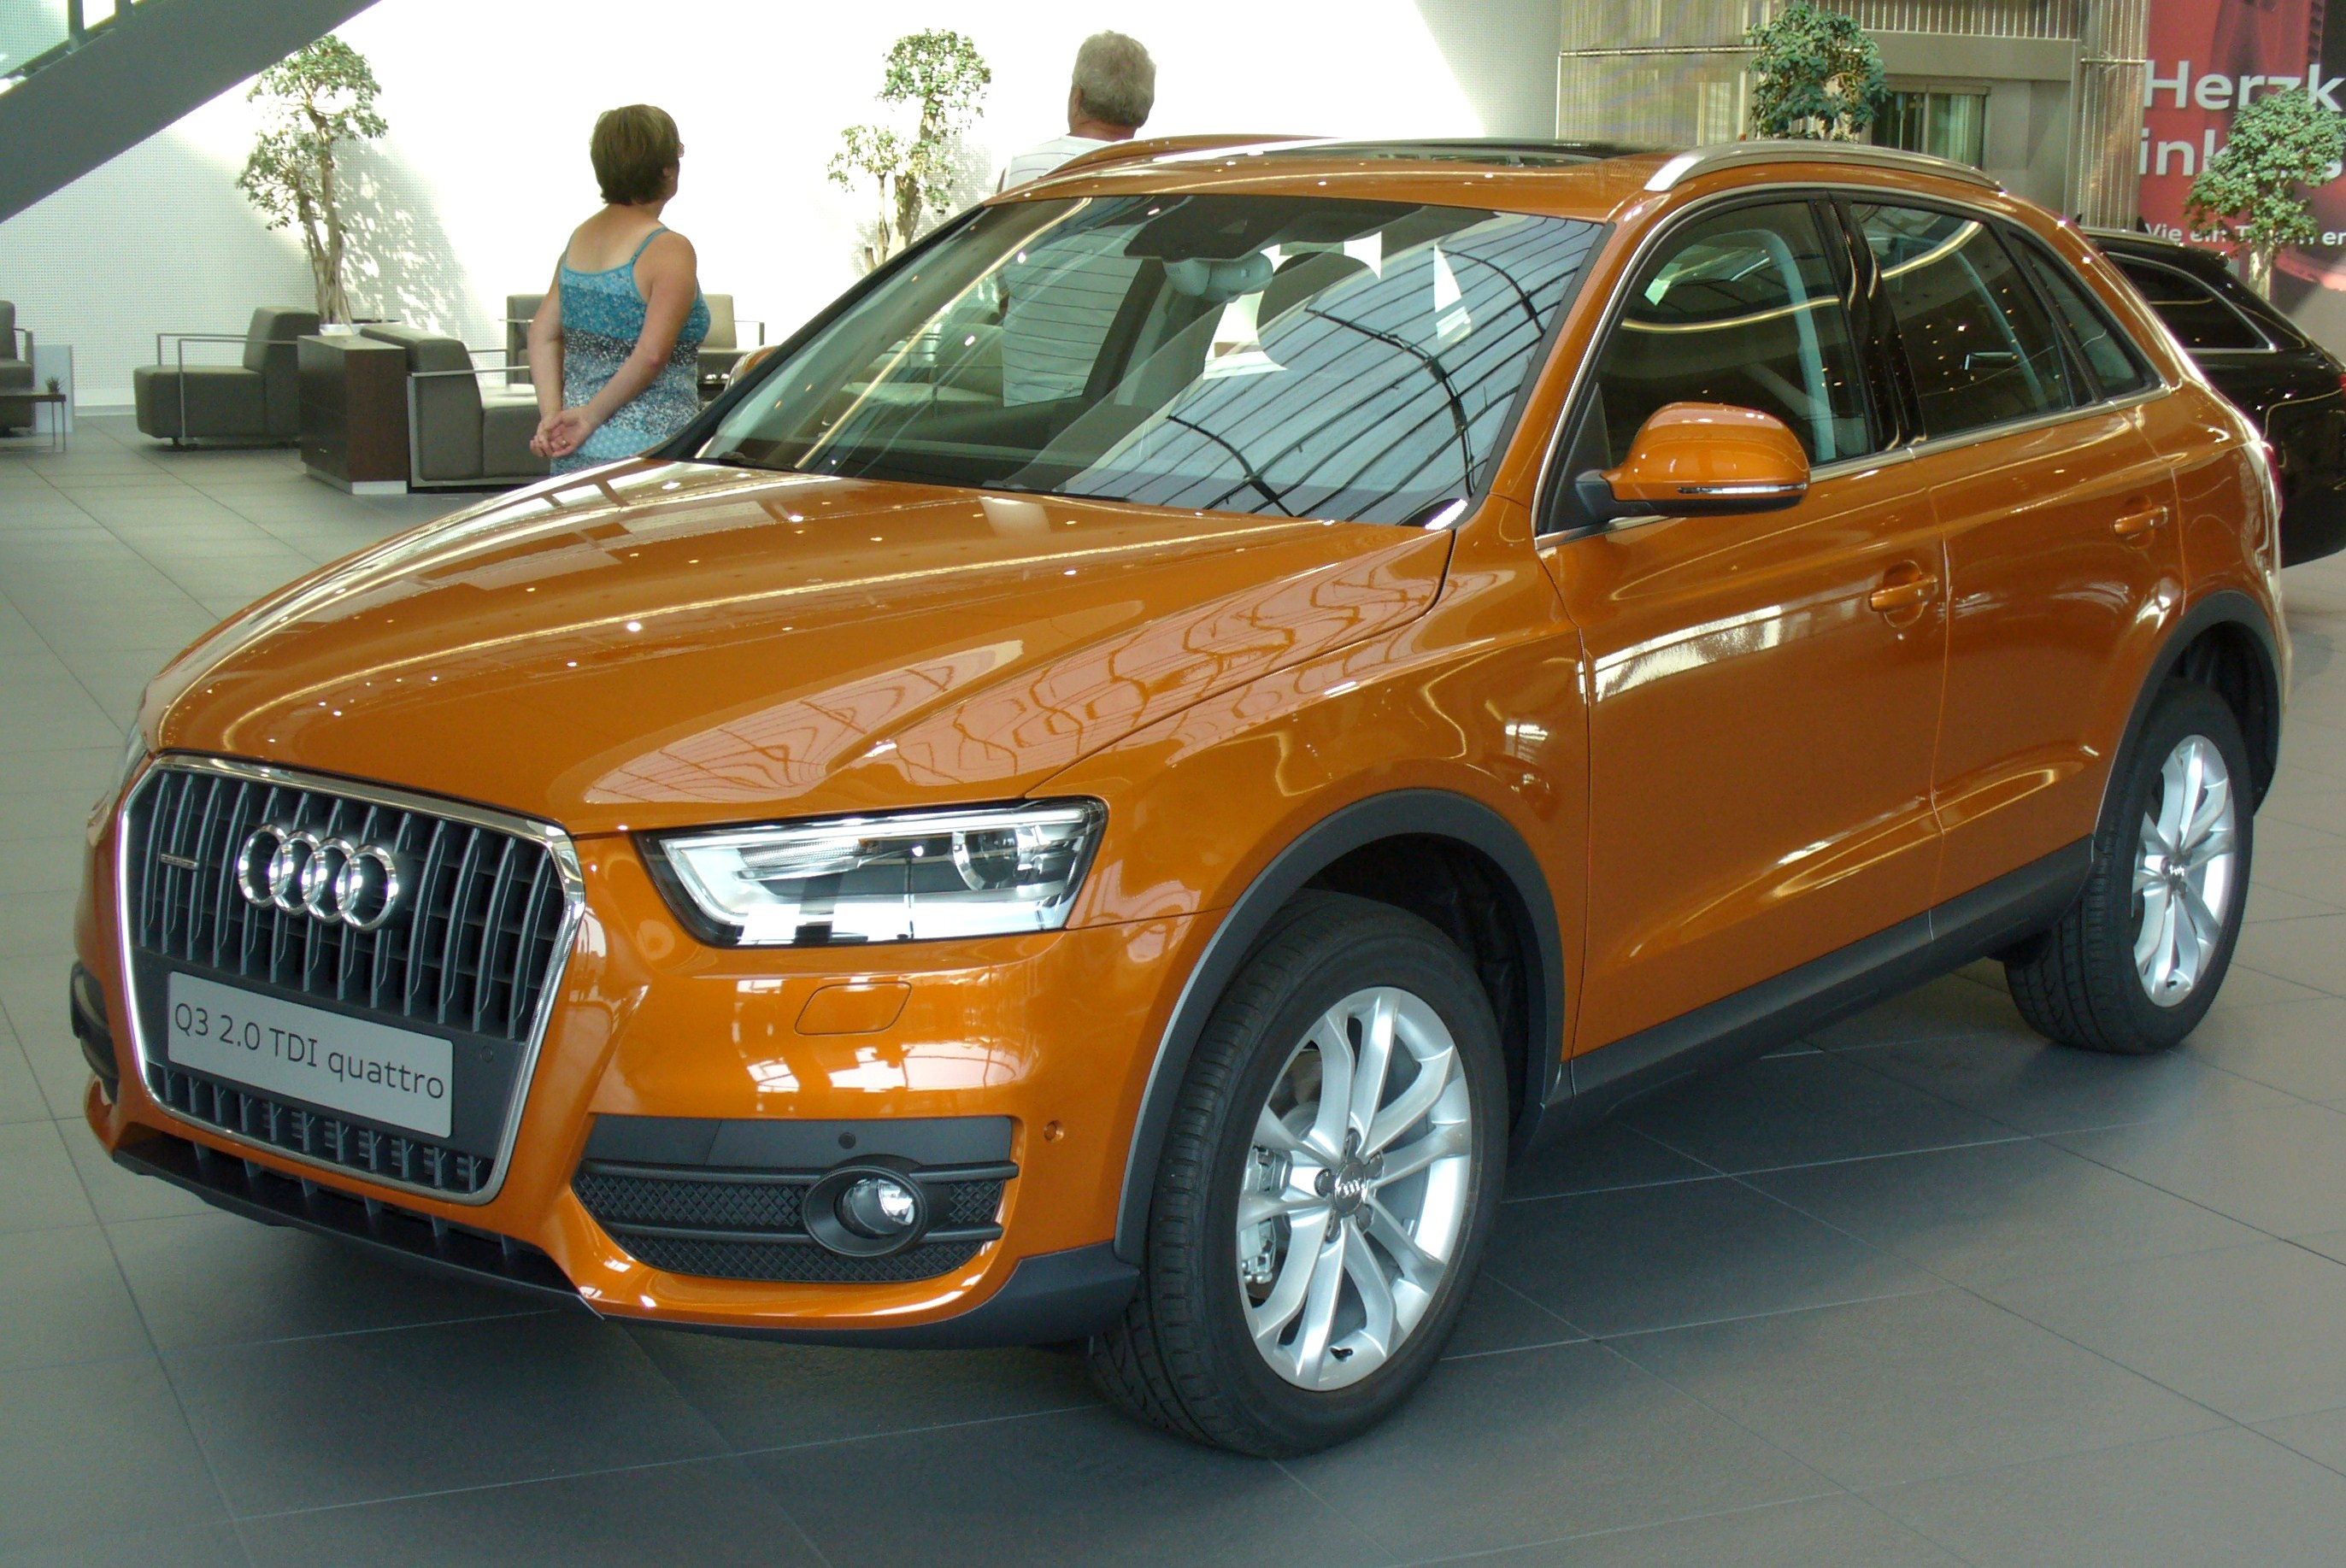 file audi q3 2 0 tdi quattro s tronic samoaorange jpg wikimedia commons. Black Bedroom Furniture Sets. Home Design Ideas